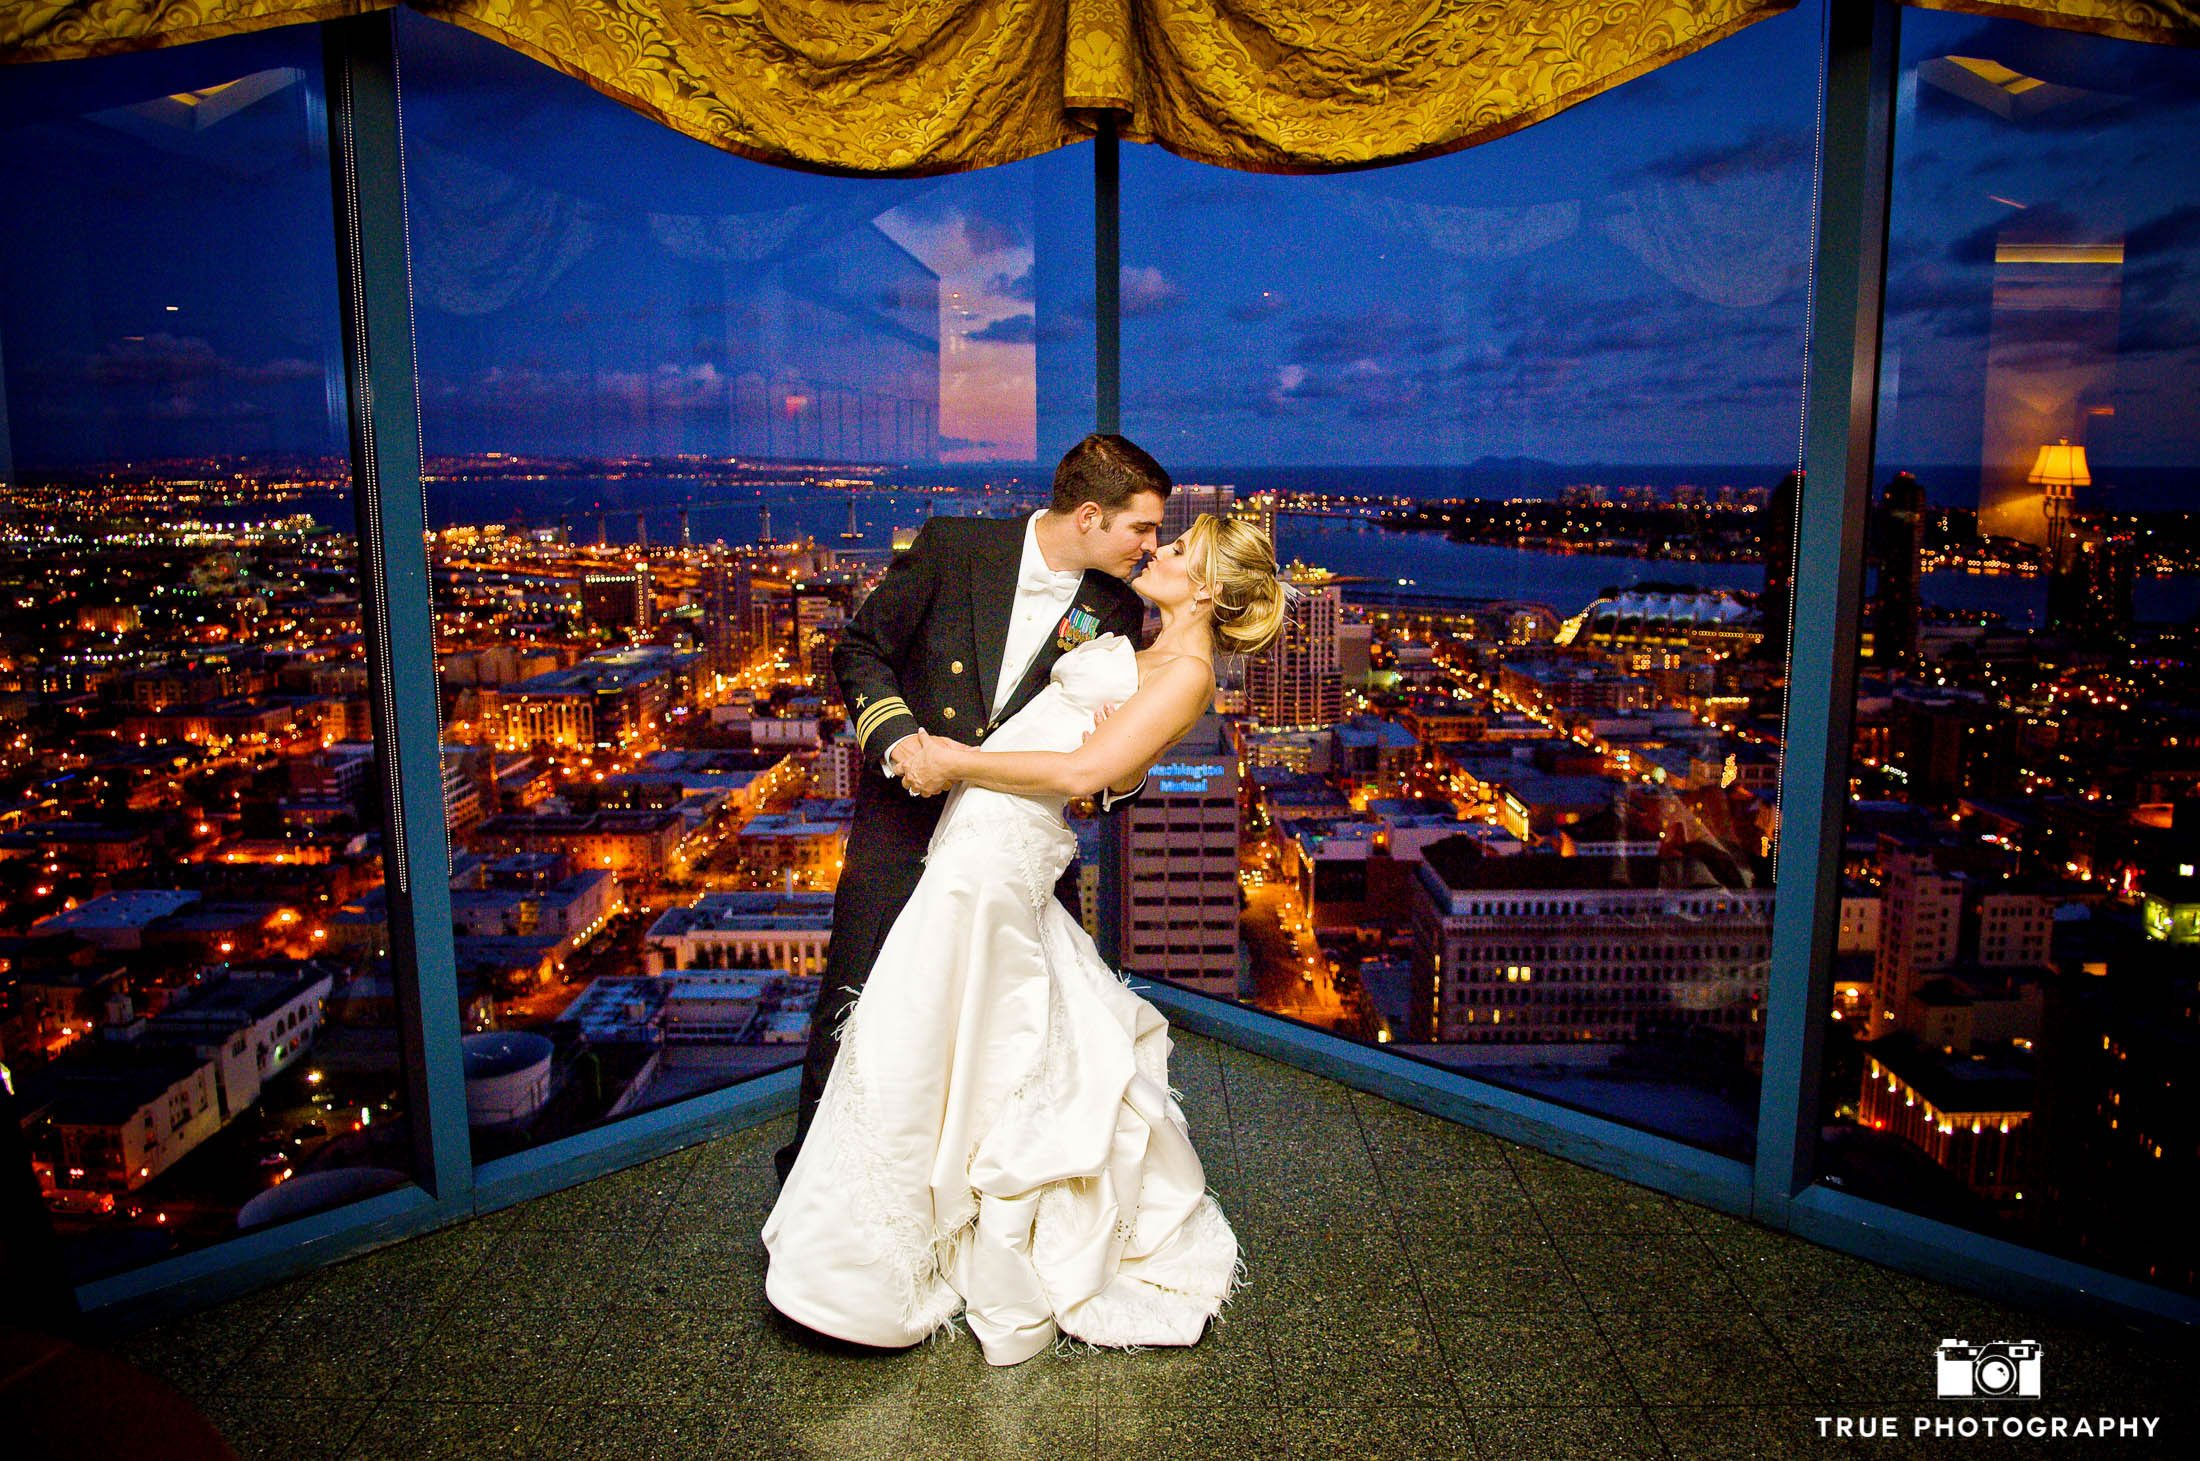 San Diego city night shot overlooking city with bride and groom